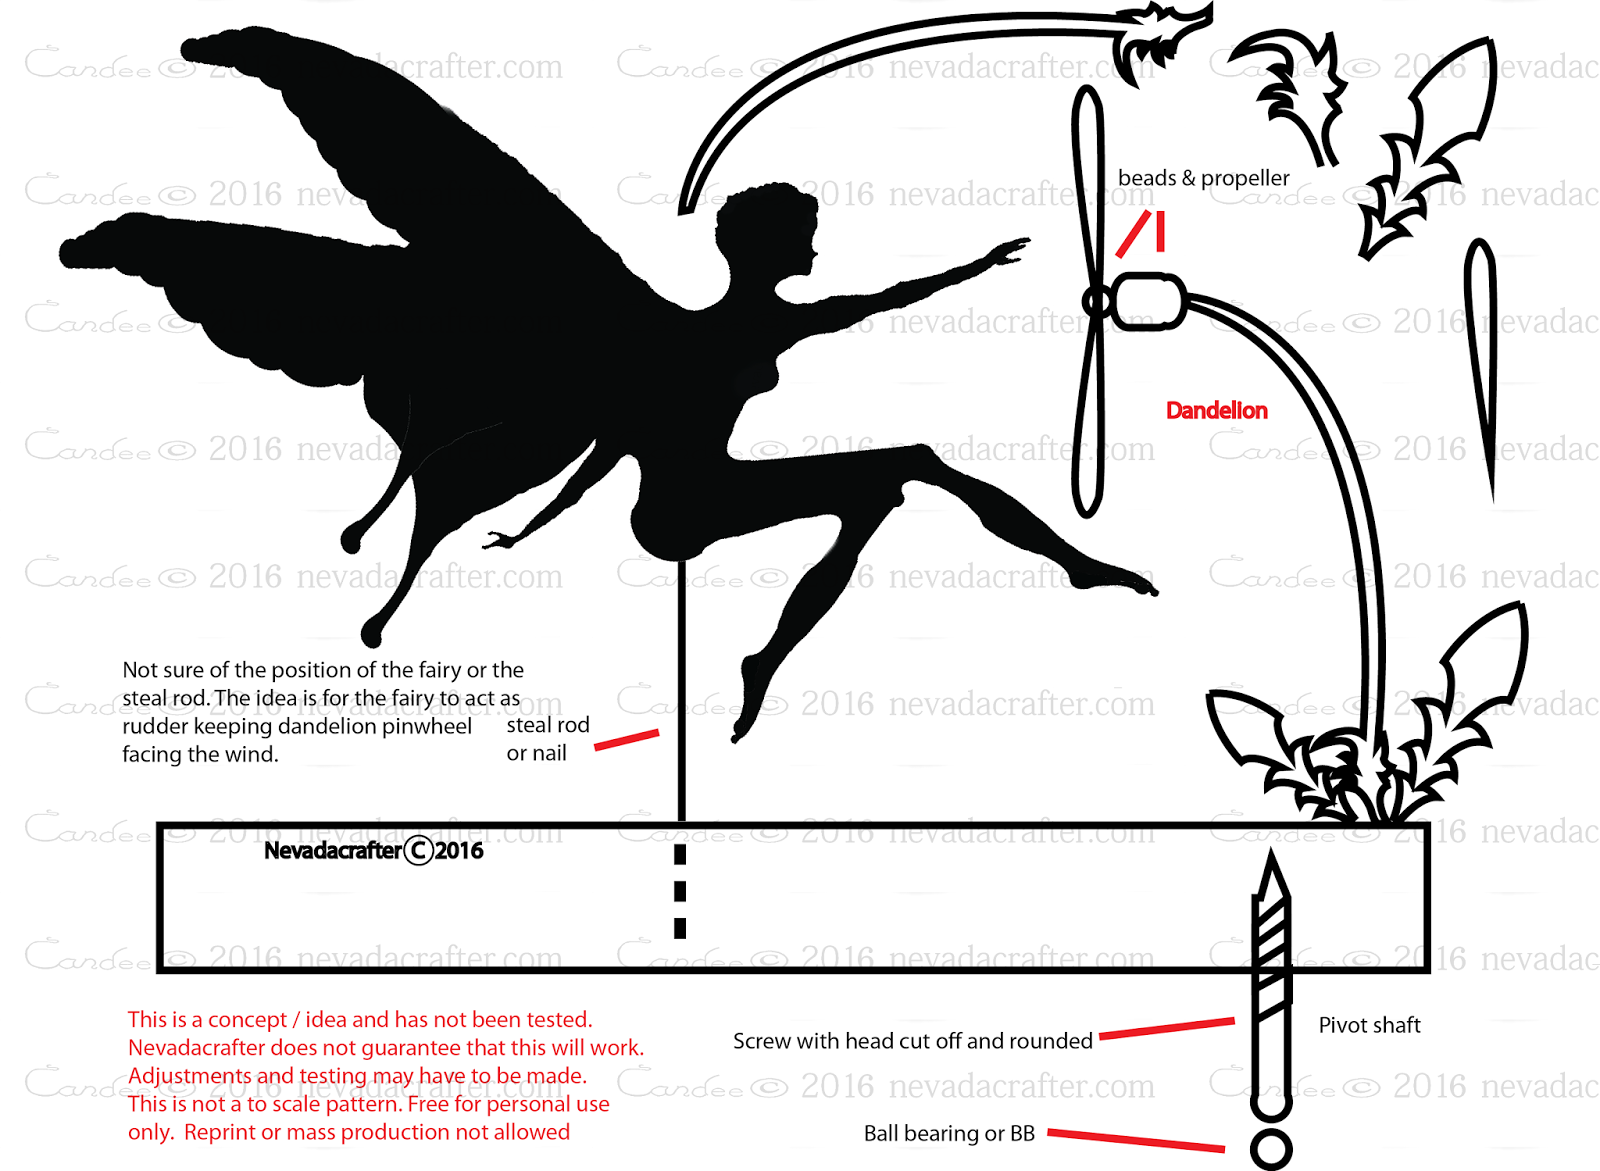 Free Patterns and ideas: Fairy whirligig / weathervane concept